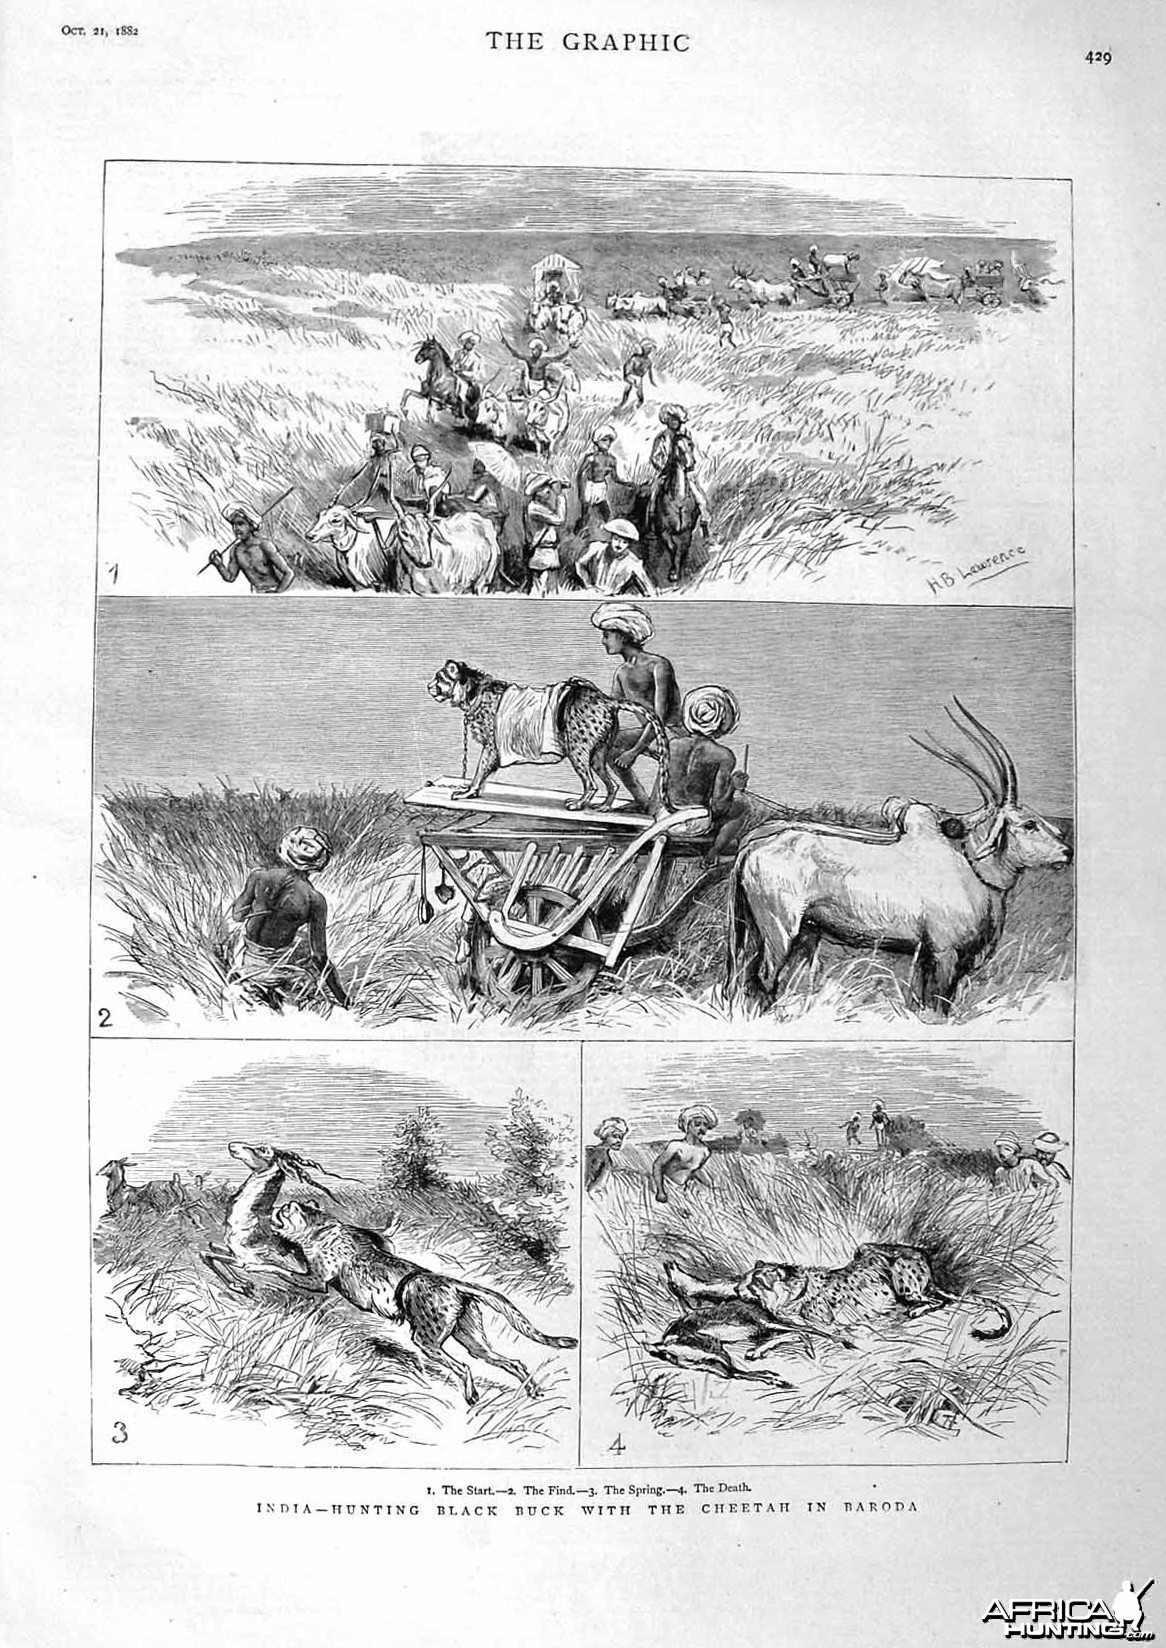 Hunting Black Buck with Cheetahs,  Baroda, India 1882